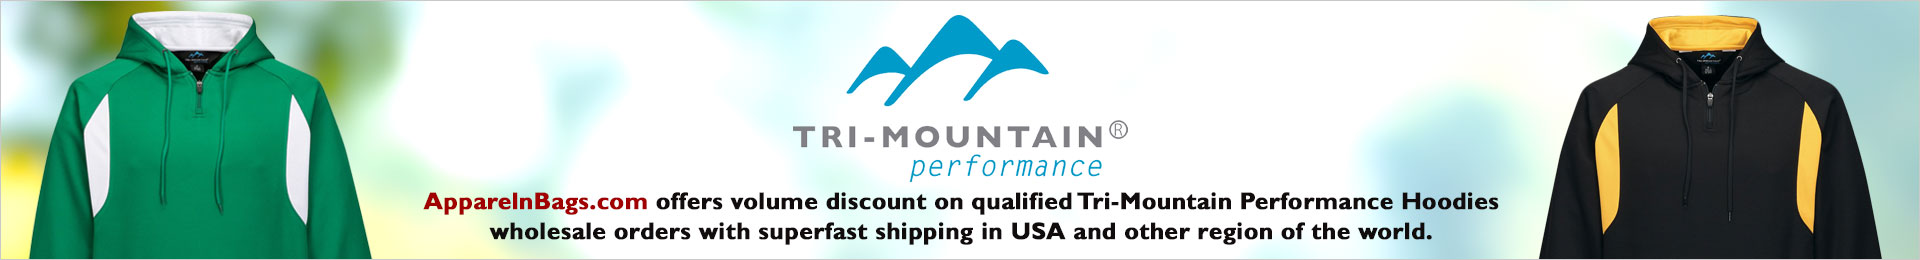 Tri-Mountain Performance Hoodies